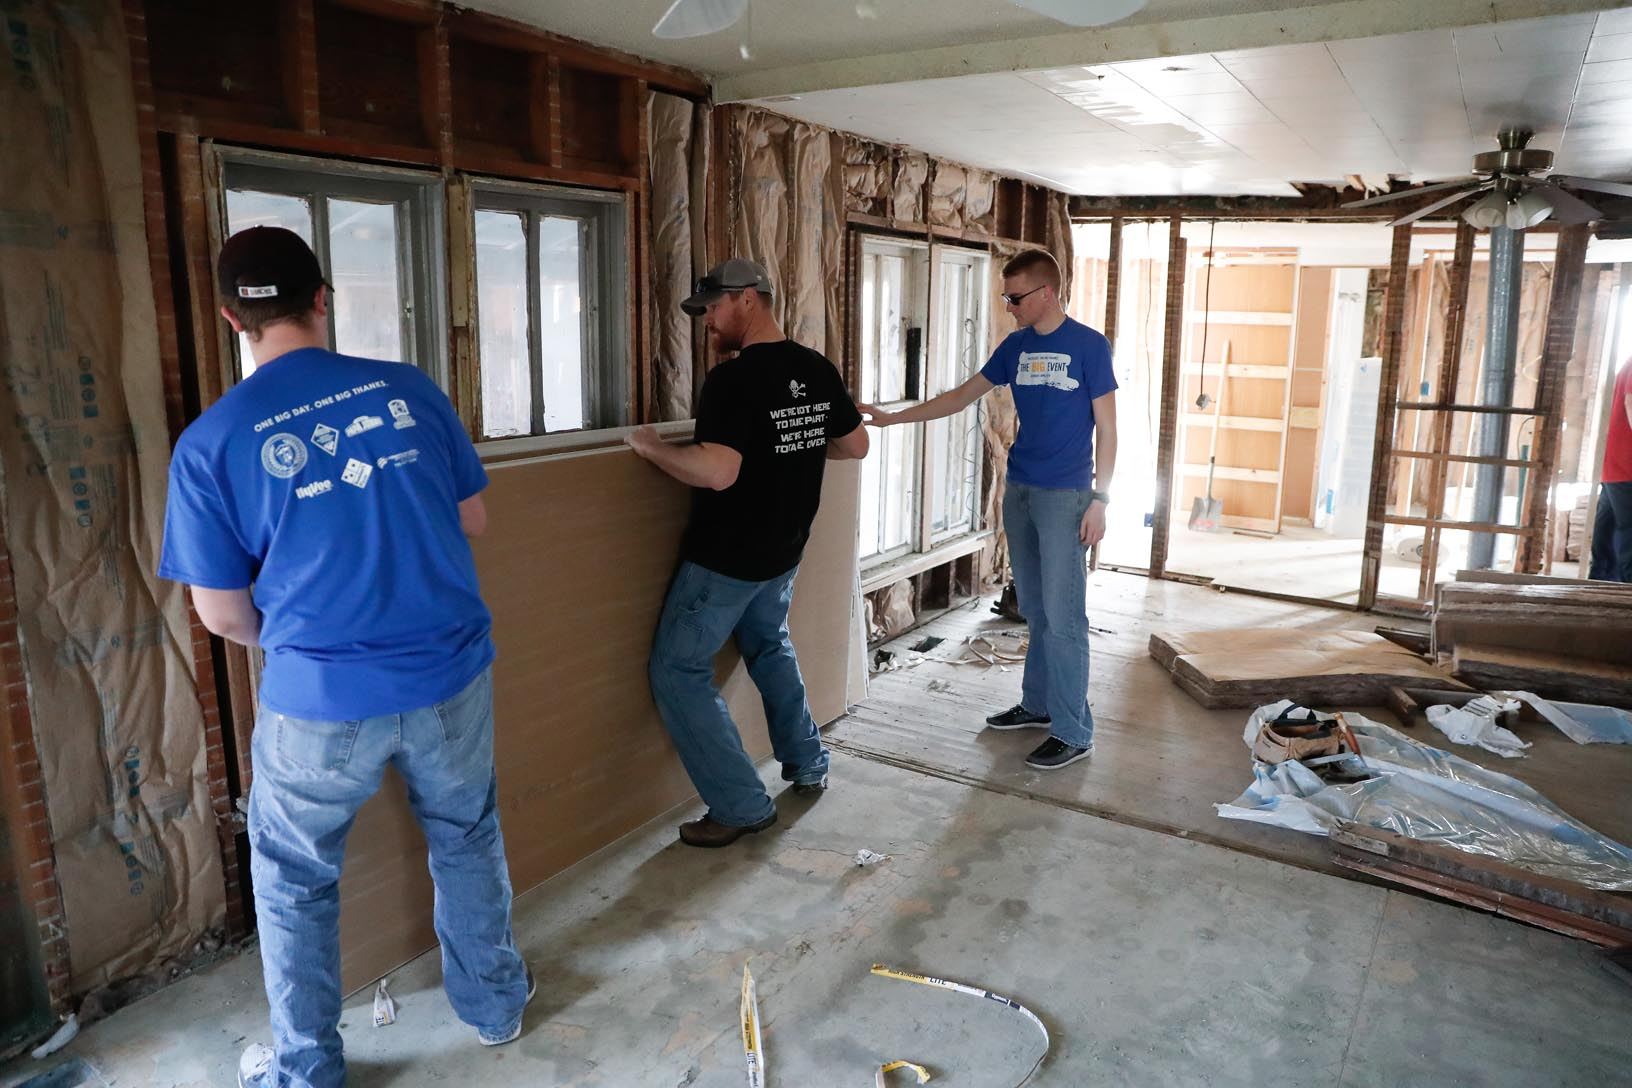 UNK students Jaden Powers of Central City, left, and Jacob Nutter of Geneva, right, put up drywall Saturday with Trevor Clark of Kearney inside a Gibbon home damaged by floods. The work was part of The Big Event, which included 500 UNK students who volunteered in Kearney and surrounding communities. (Photo by Corbey R. Dorsey, UNK Communications)